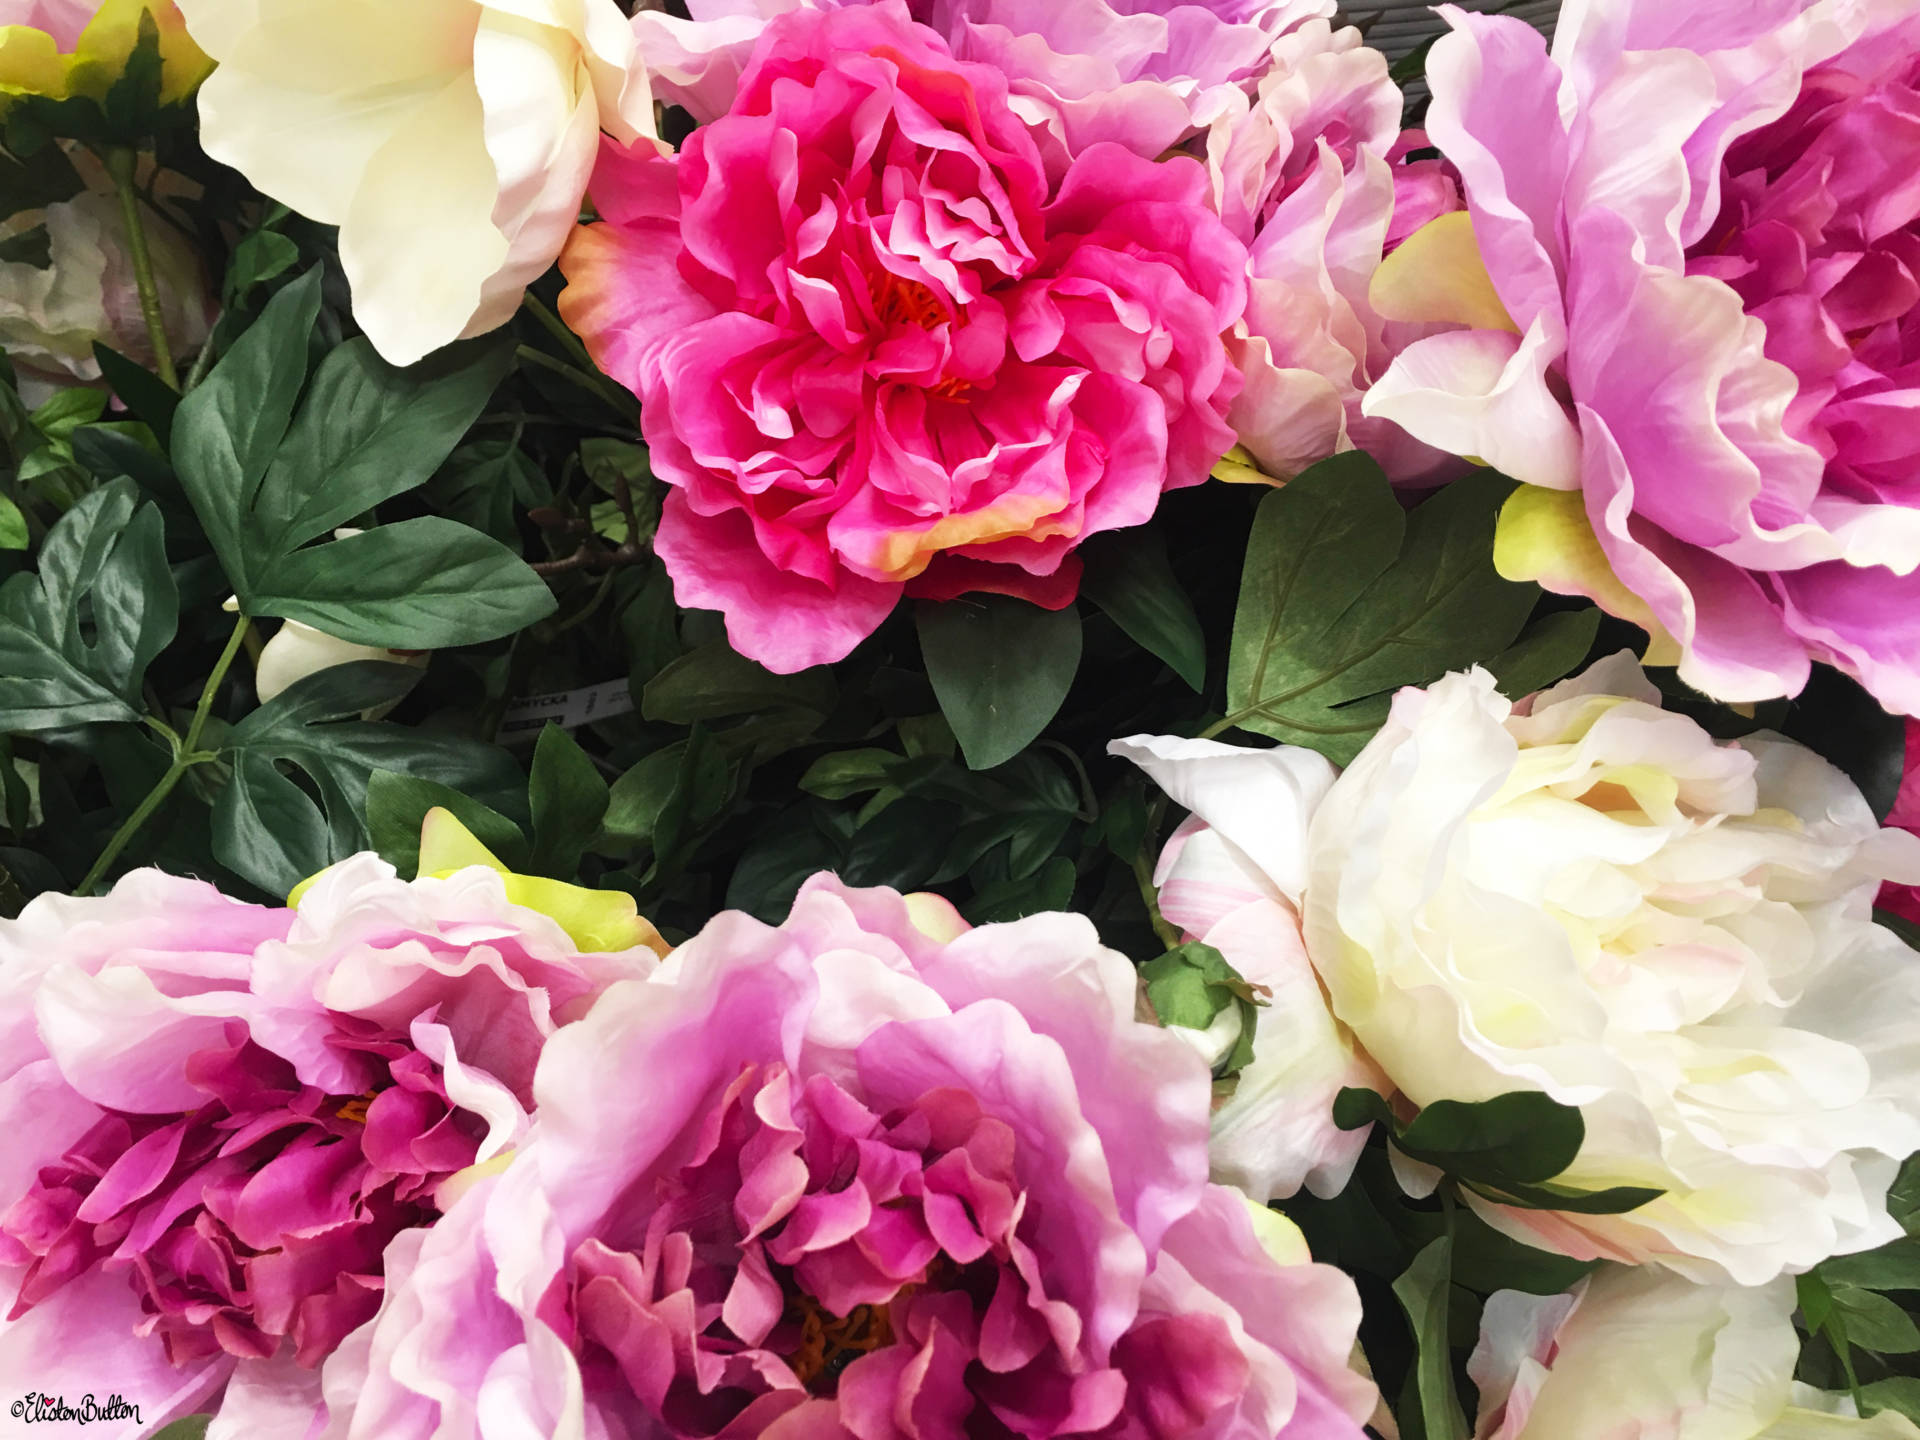 Pretty Peony Faux Flower Display at IKEA, Coventry - The Patterns and Colours of IKEA at www.elistonbutton.com - Eliston Button - That Crafty Kid – Art, Design, Craft & Adventure.